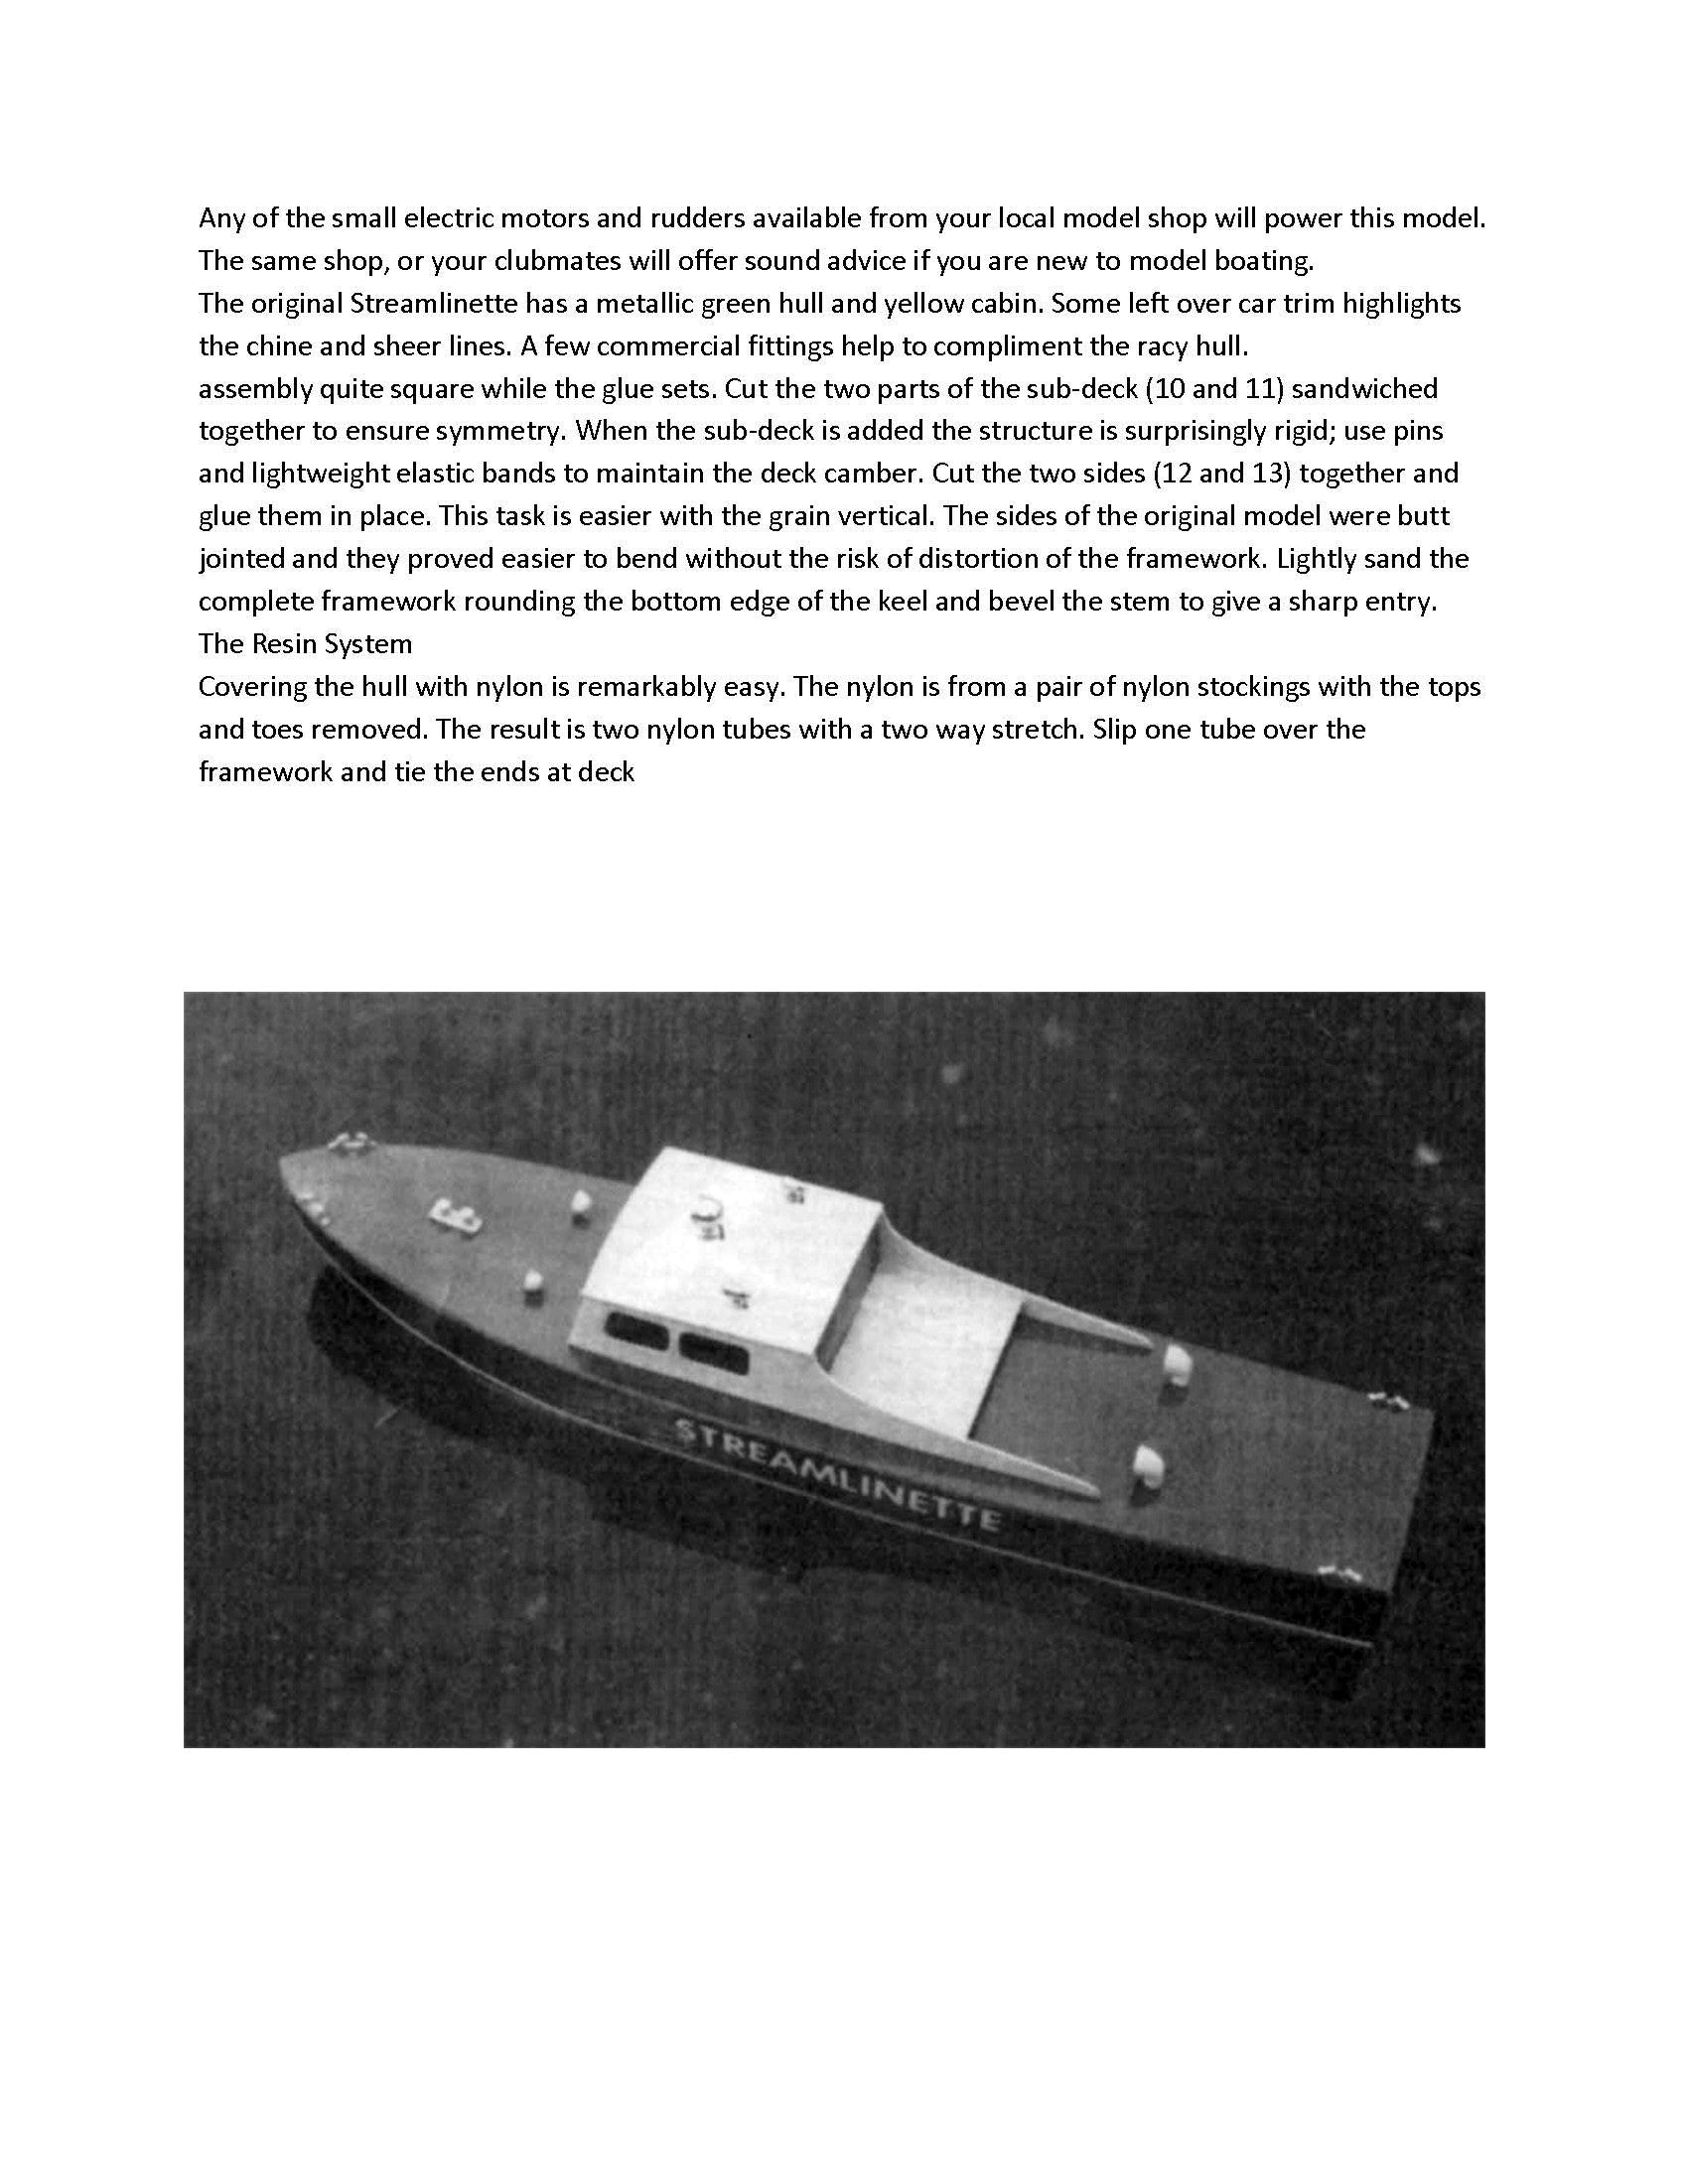 "Full Size Printed Plans for 18 1/2"" model boat Streamlinette suitable for small R/C"